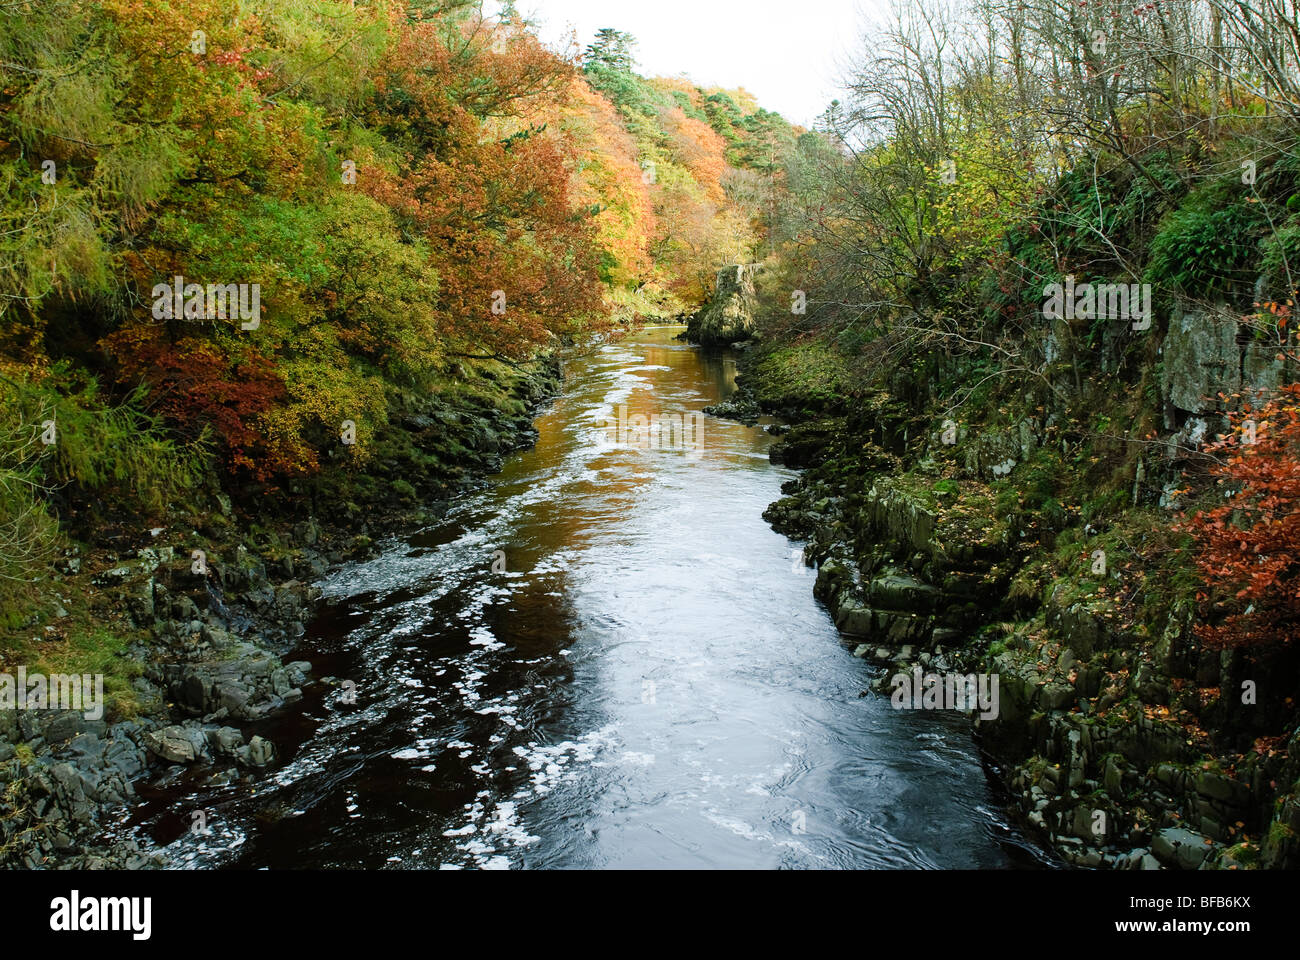 River Tees in Autumn - Stock Image